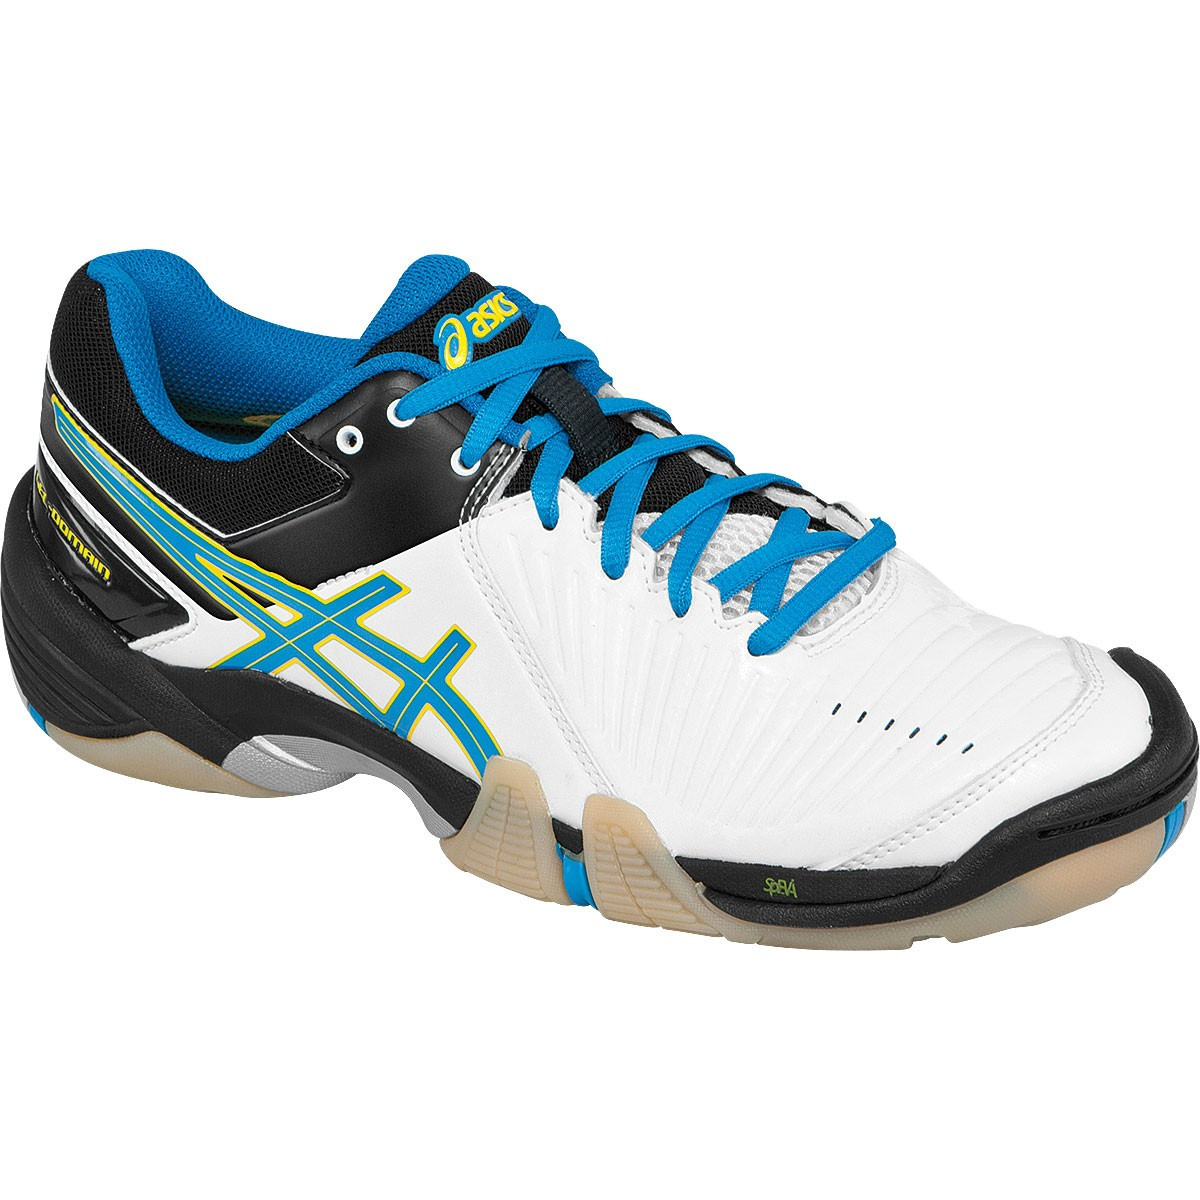 Asics Women's GEL-Domain 3